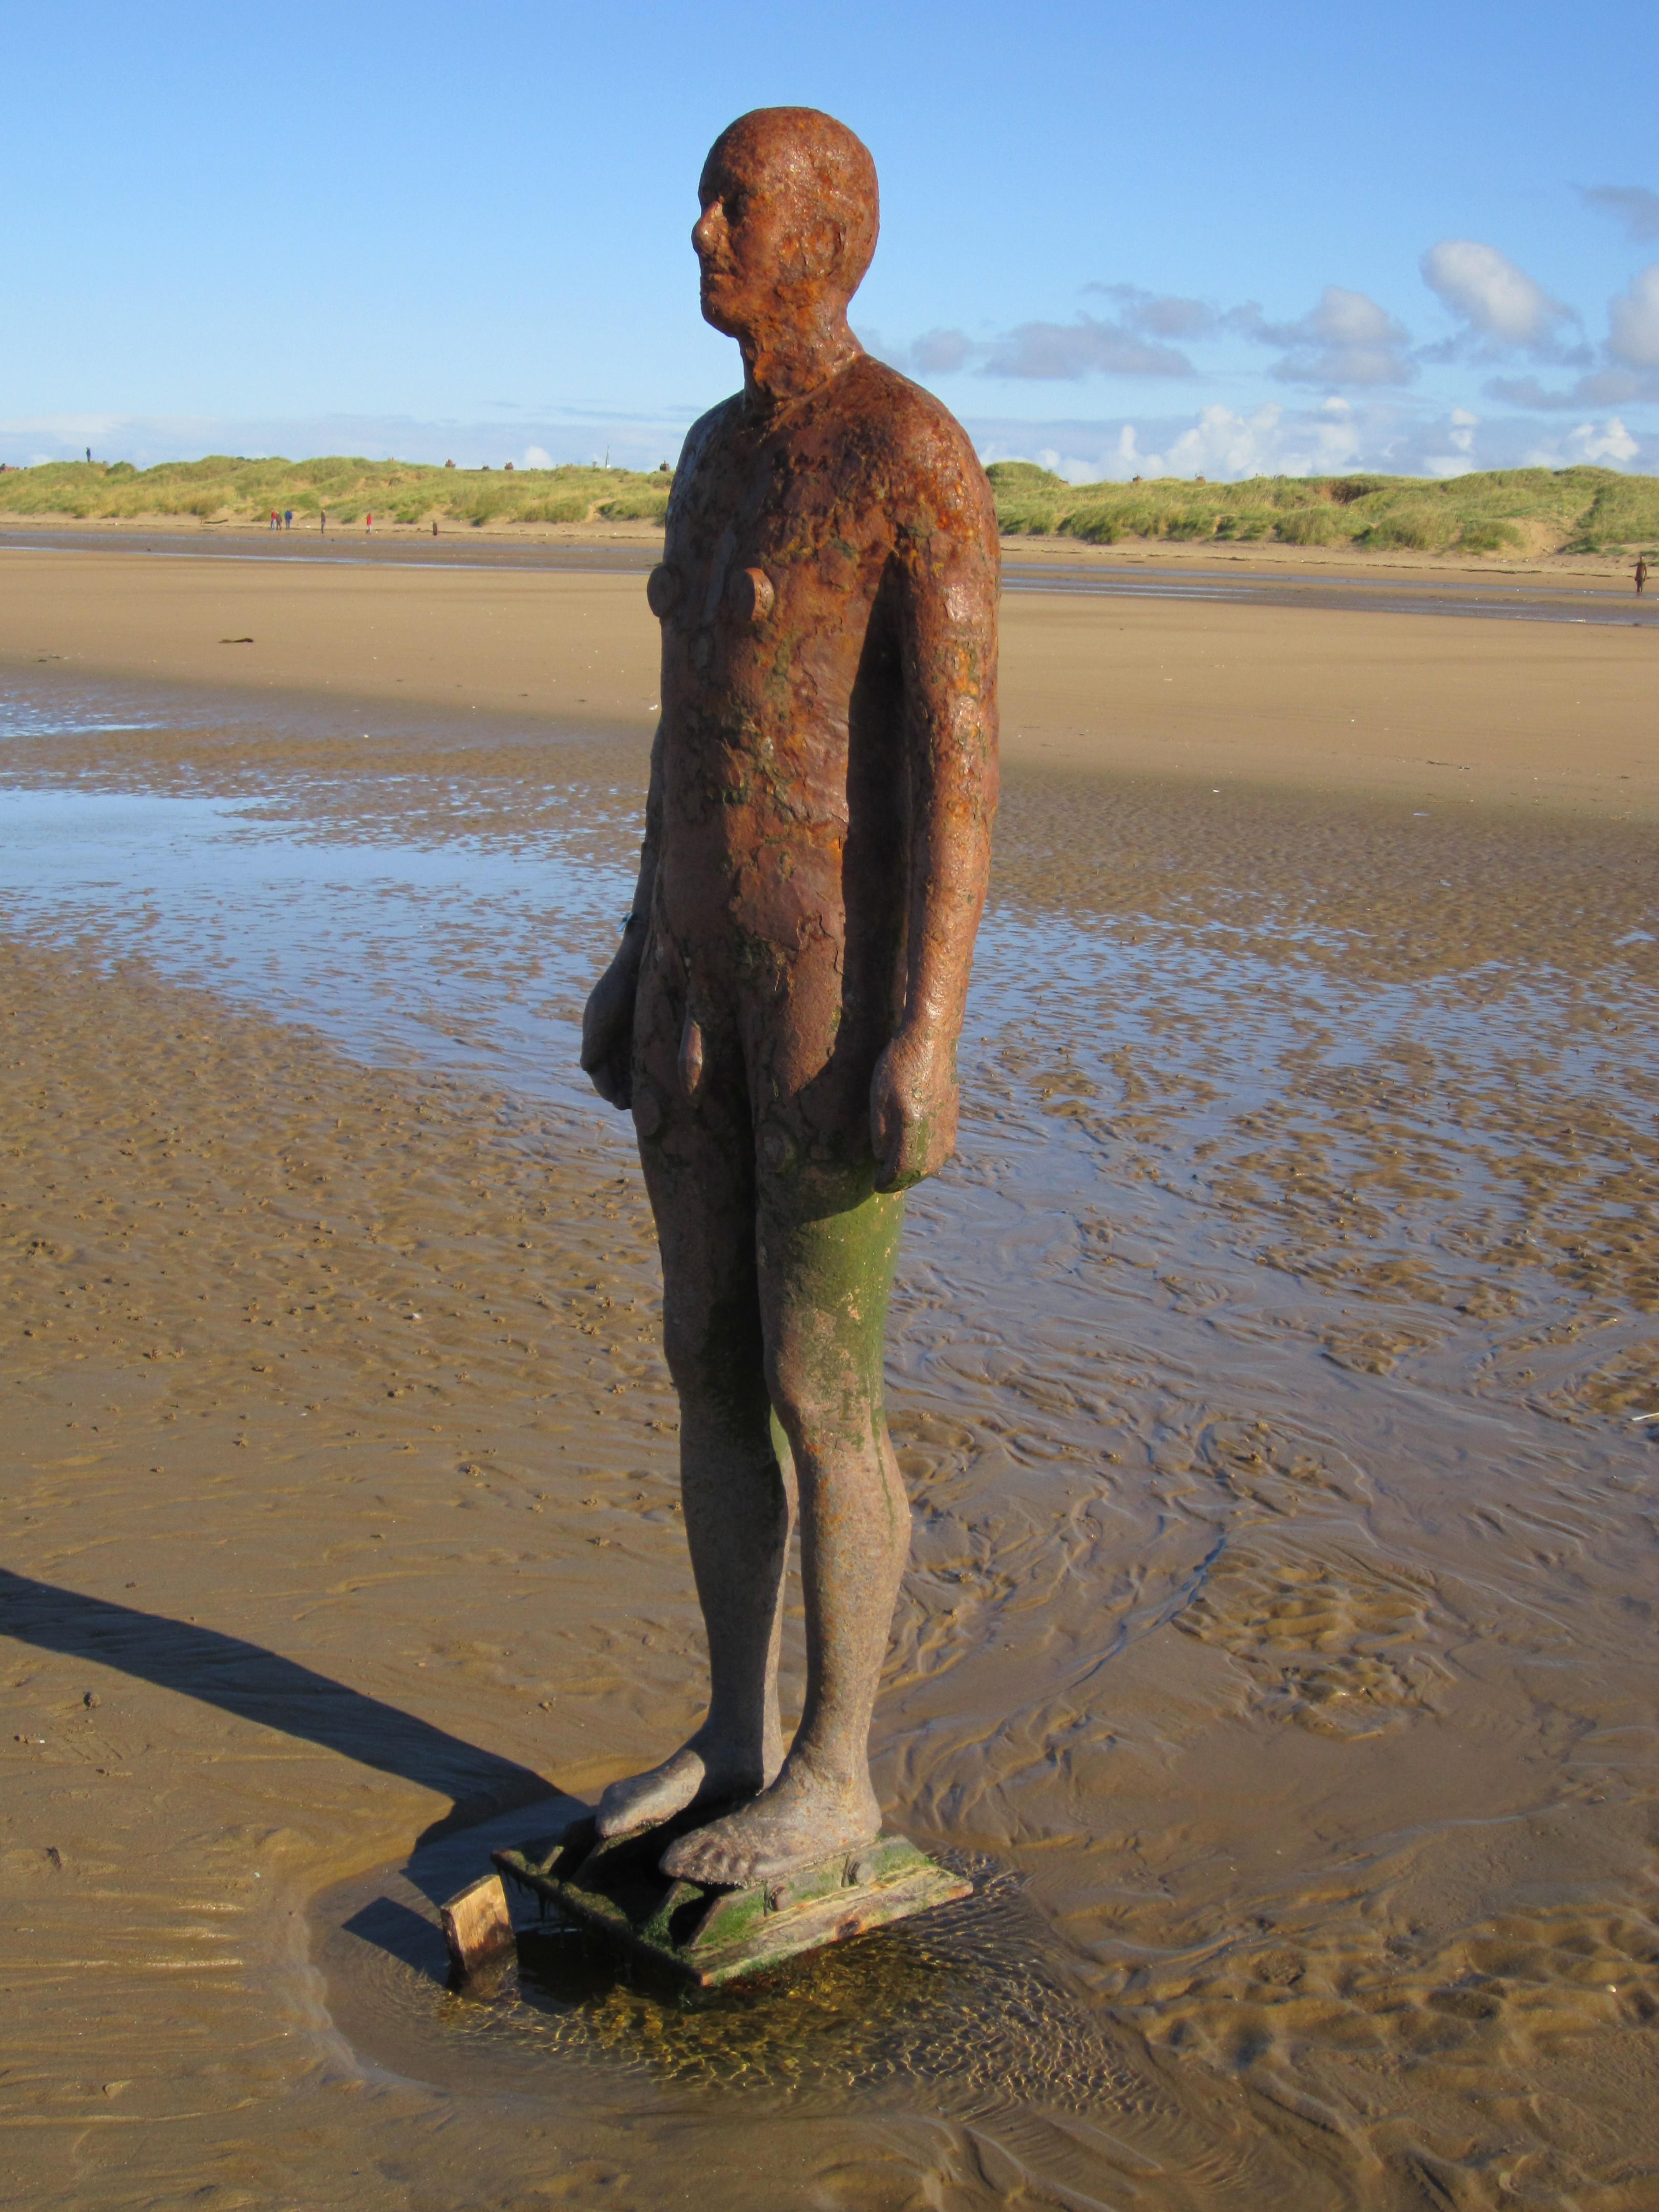 File:Antony Gormley's Another Place - IMG 2423.